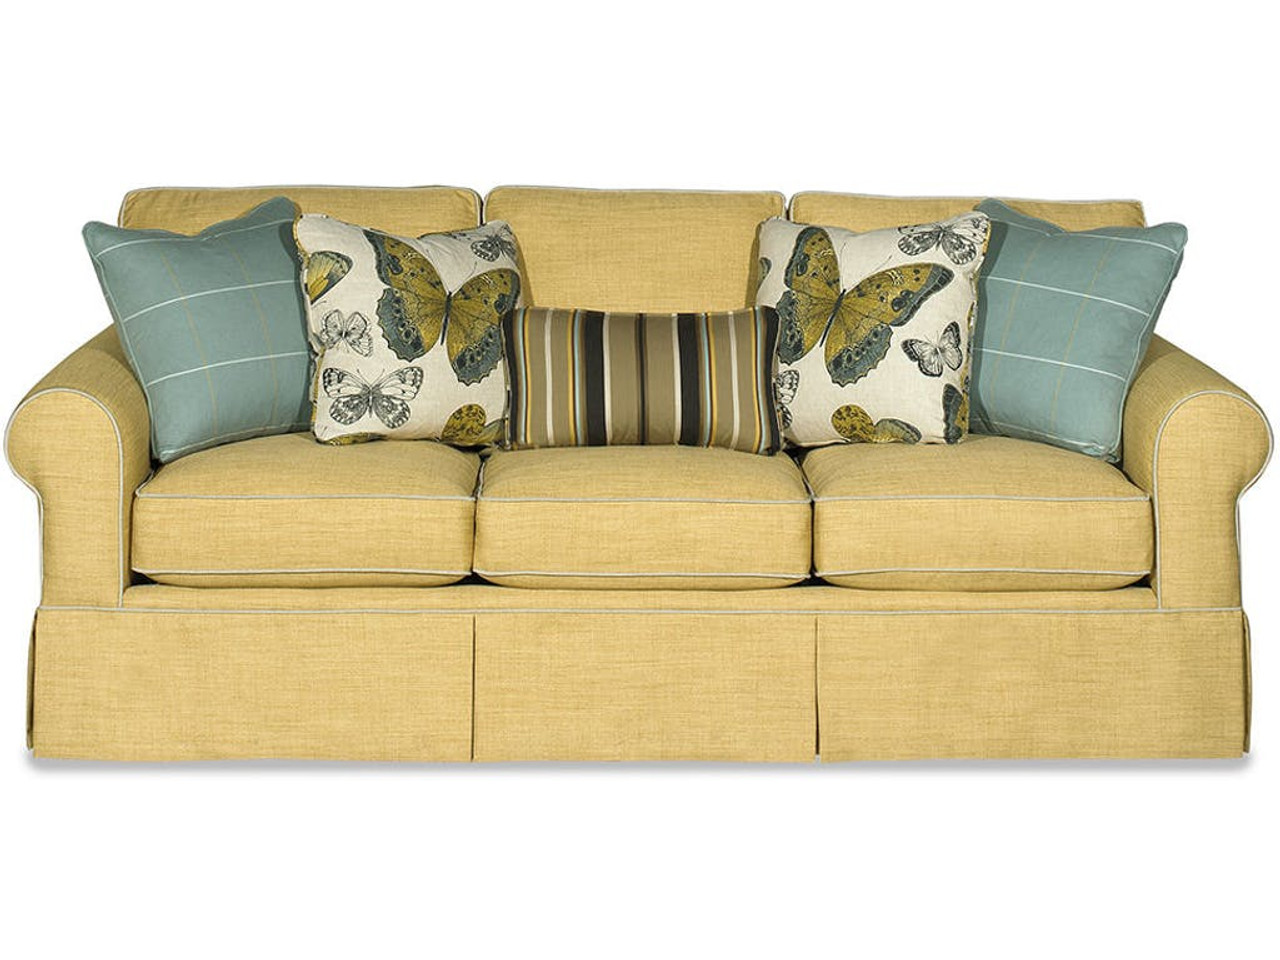 Buy The Paula Deen By Craftmaster Model P992050bd Sofa Couch On